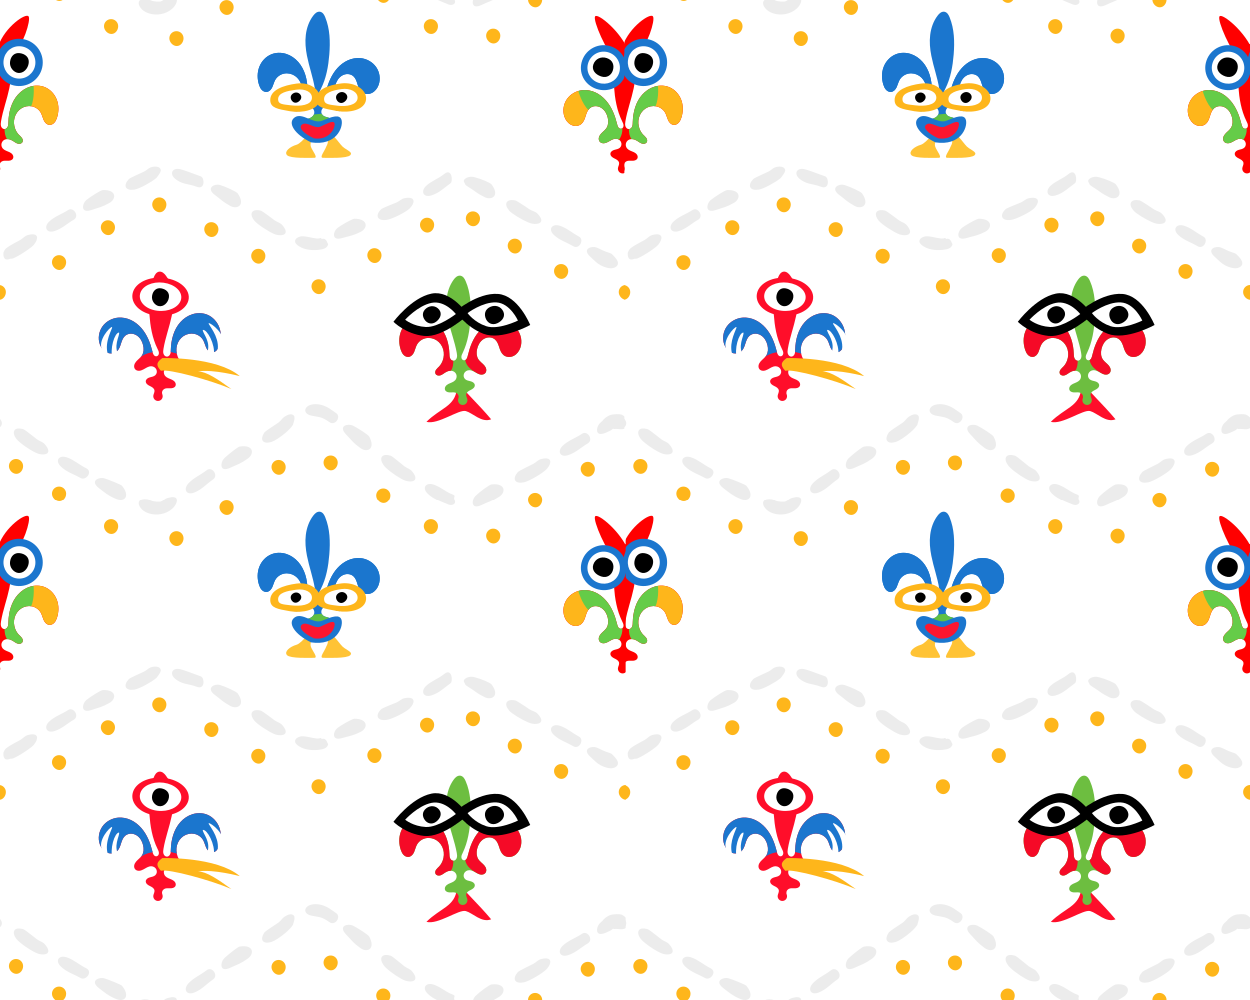 Design 2 textile patterns for a baby's accessories brand